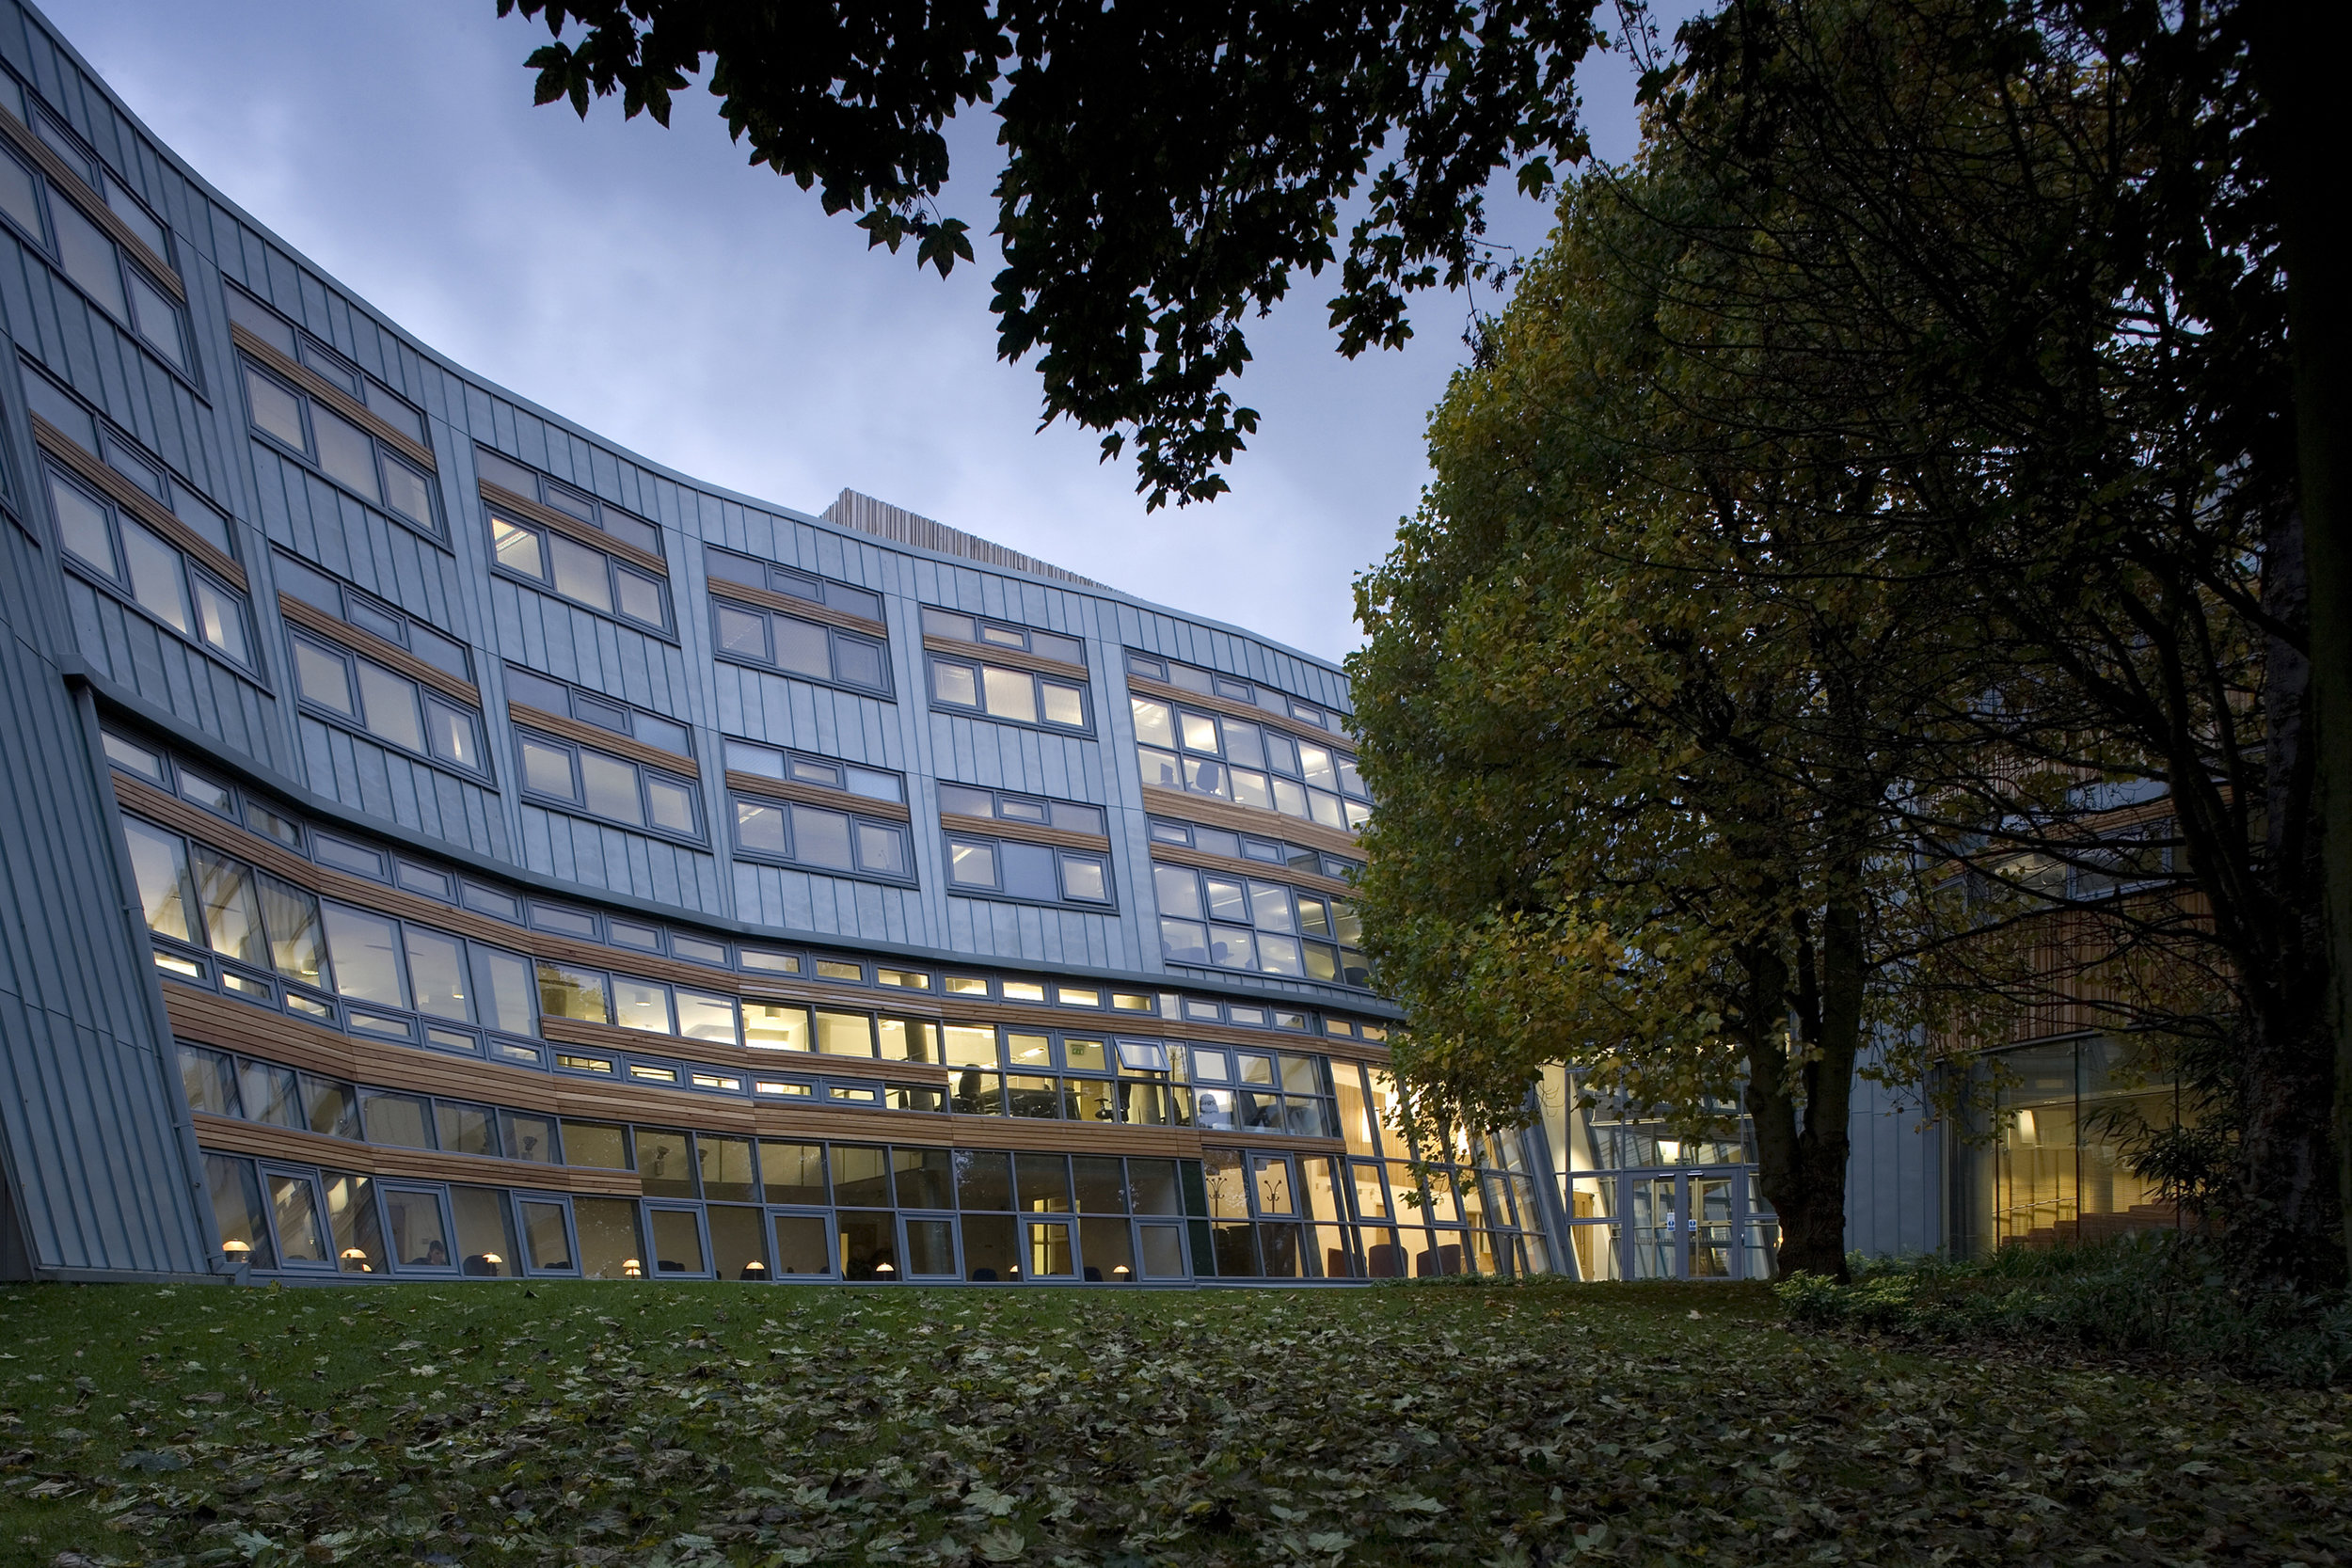 Stephen-Hill-Architects-Berrick-Saul-Building-York-03